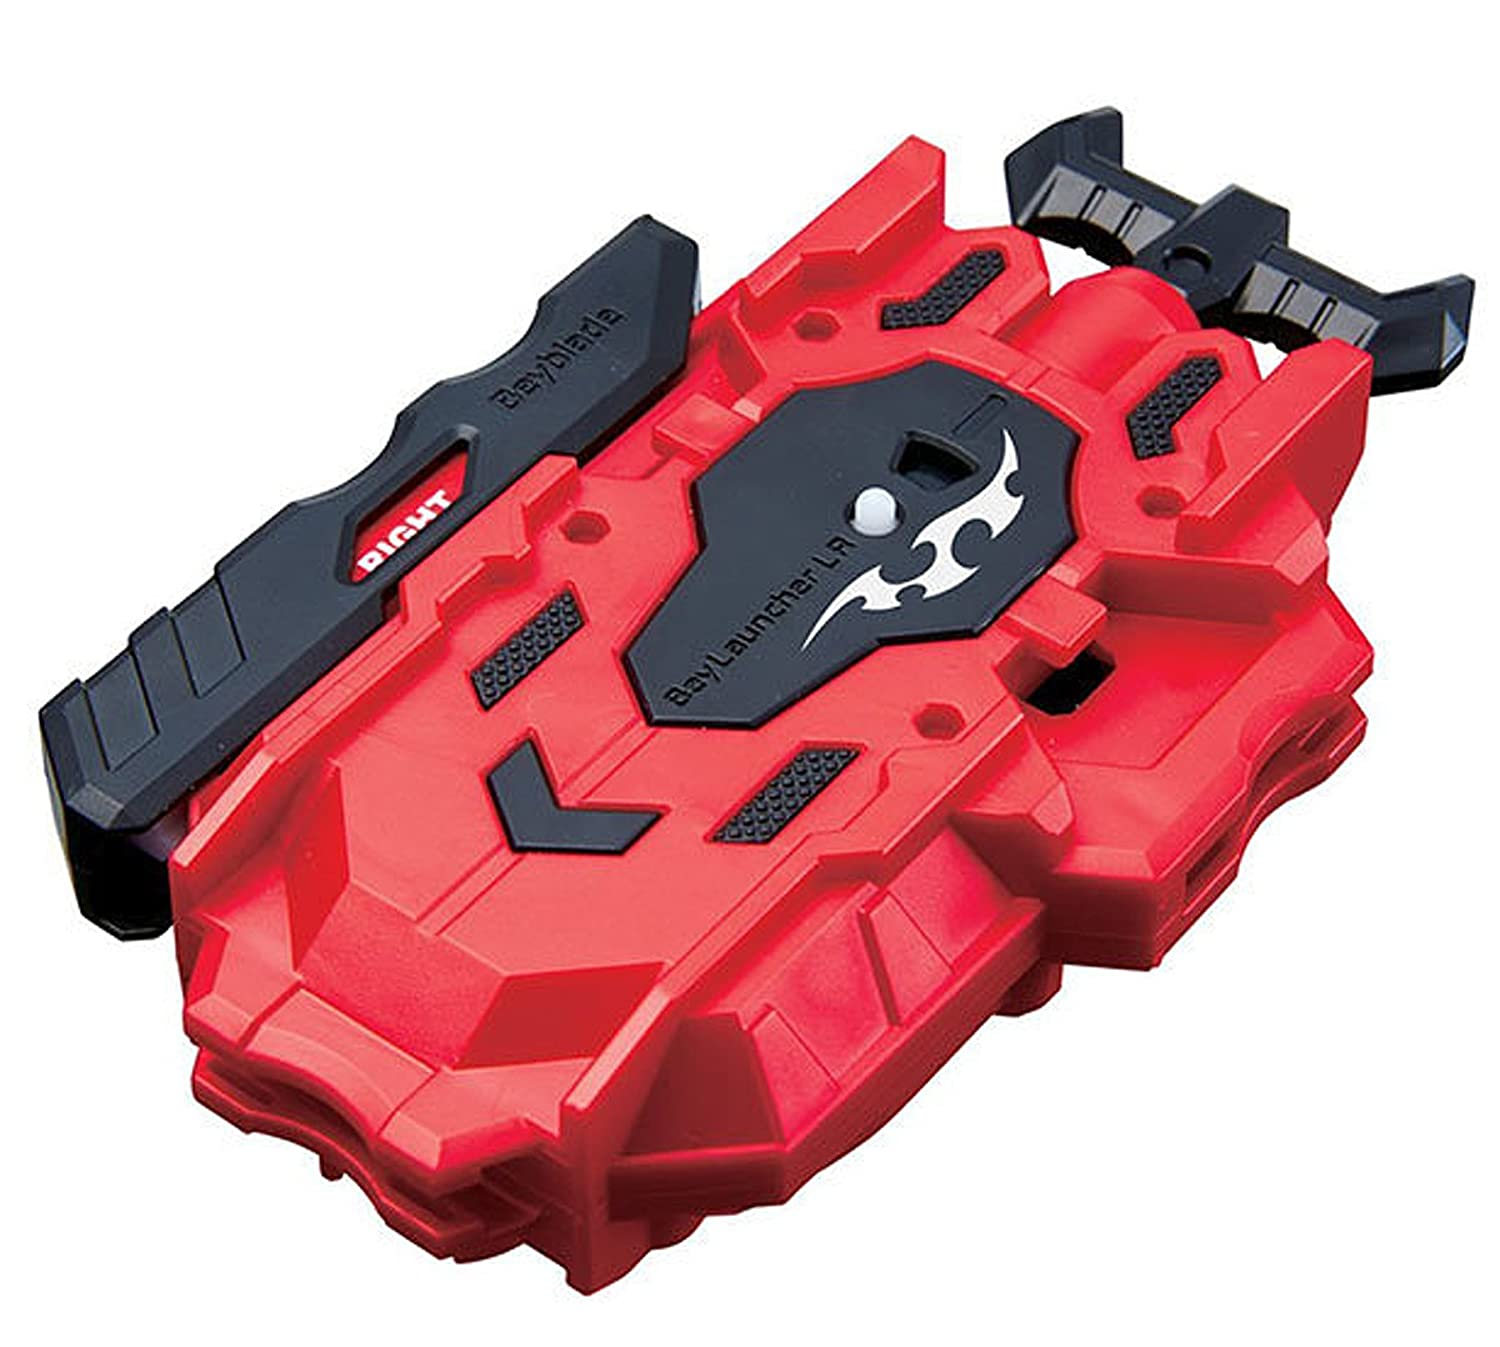 Beyblade Burst B-88 Bey Launcher LR Red Young toys